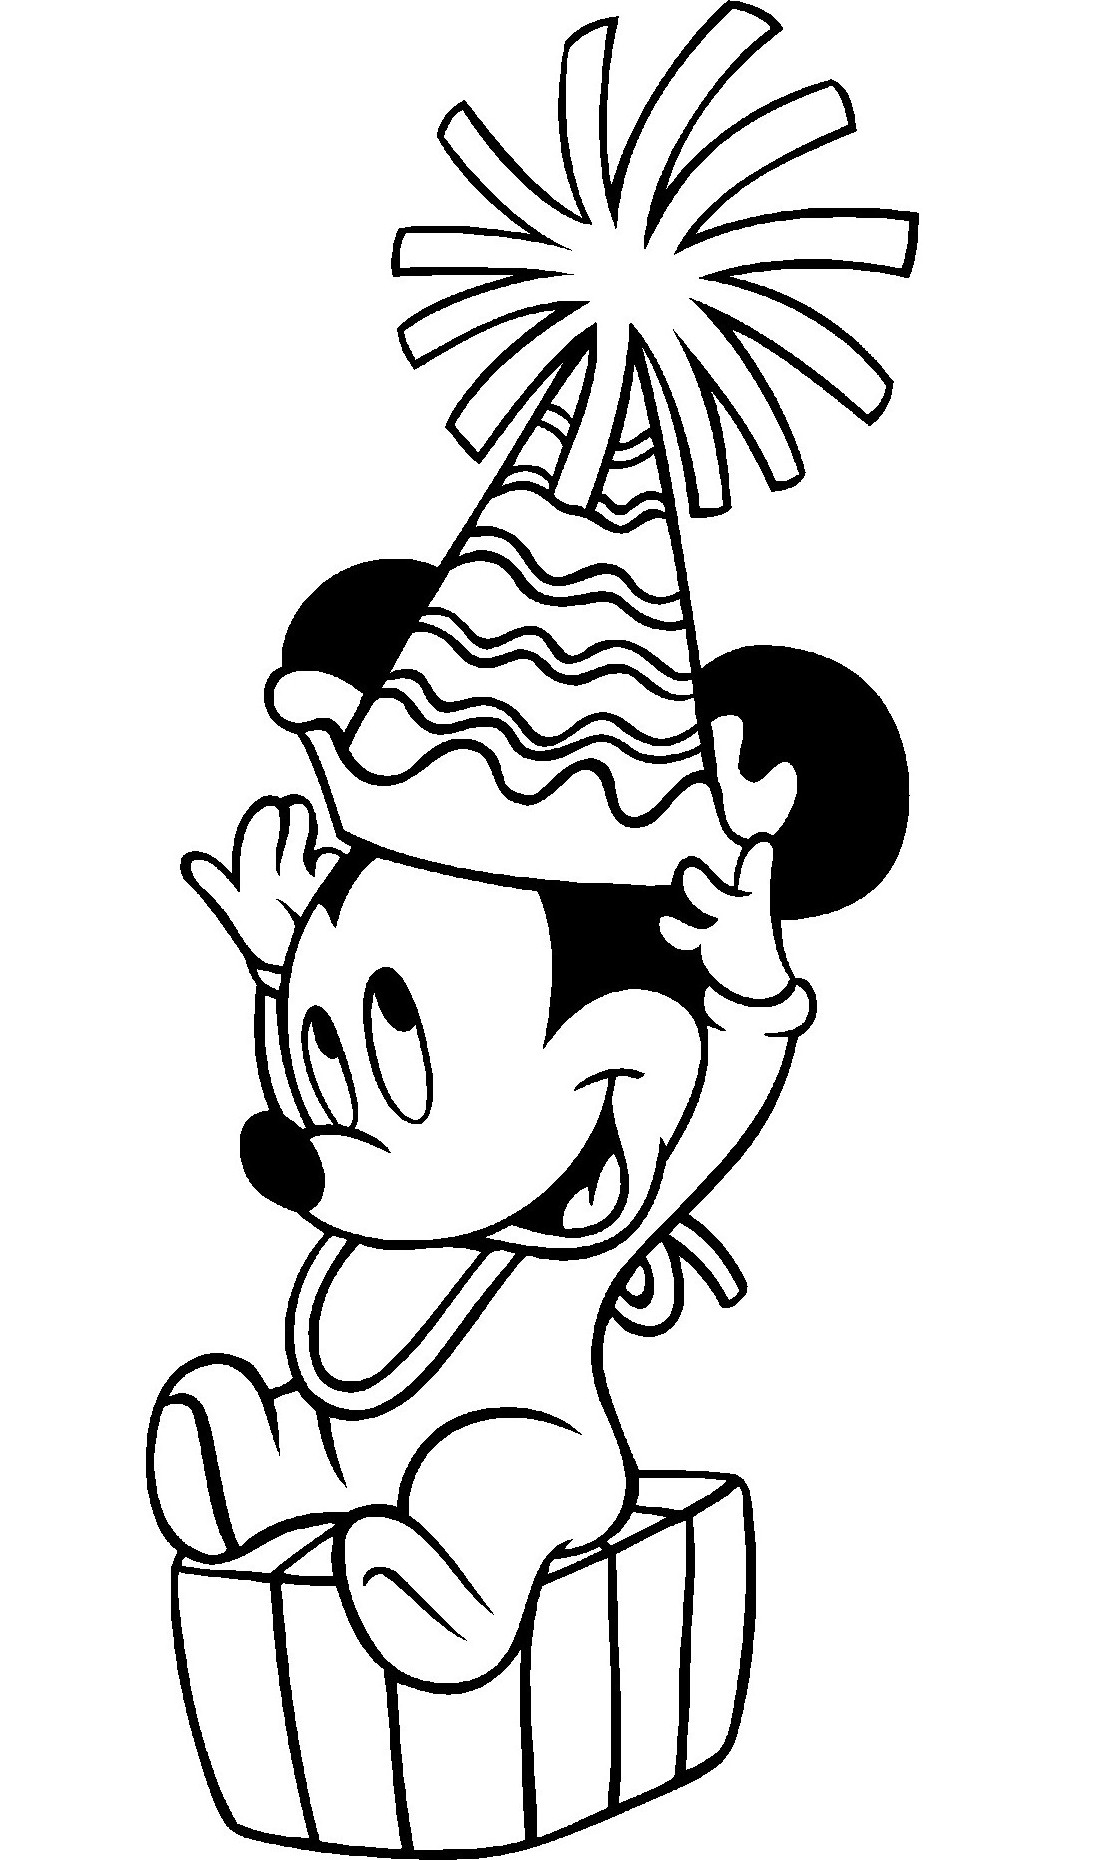 mickey mouse coloring pages printable - Mickey Mouse Birthday Color Pages